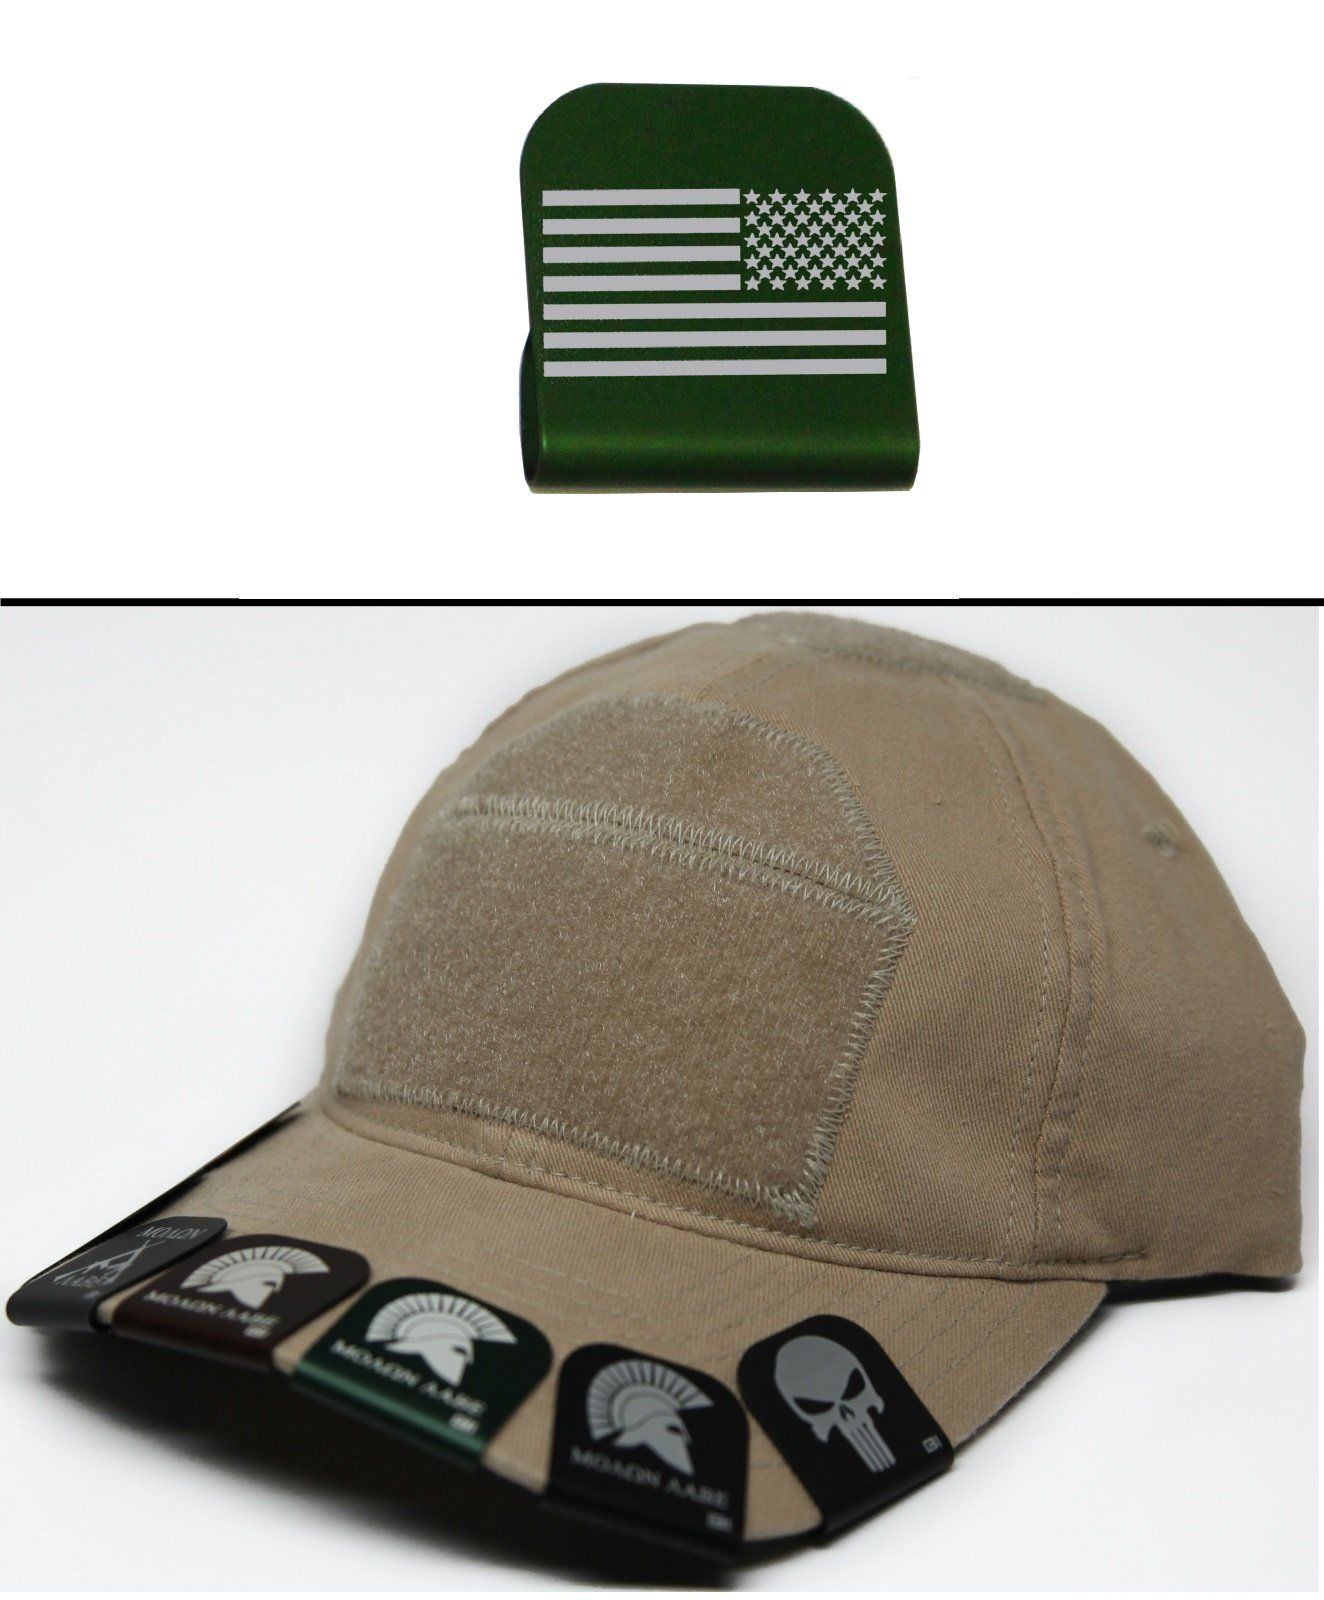 Ultimate Arms Gear USA AMERICAN FLAG REVERSE Hat Cap Crown Brim-It ... 82d28a458ba